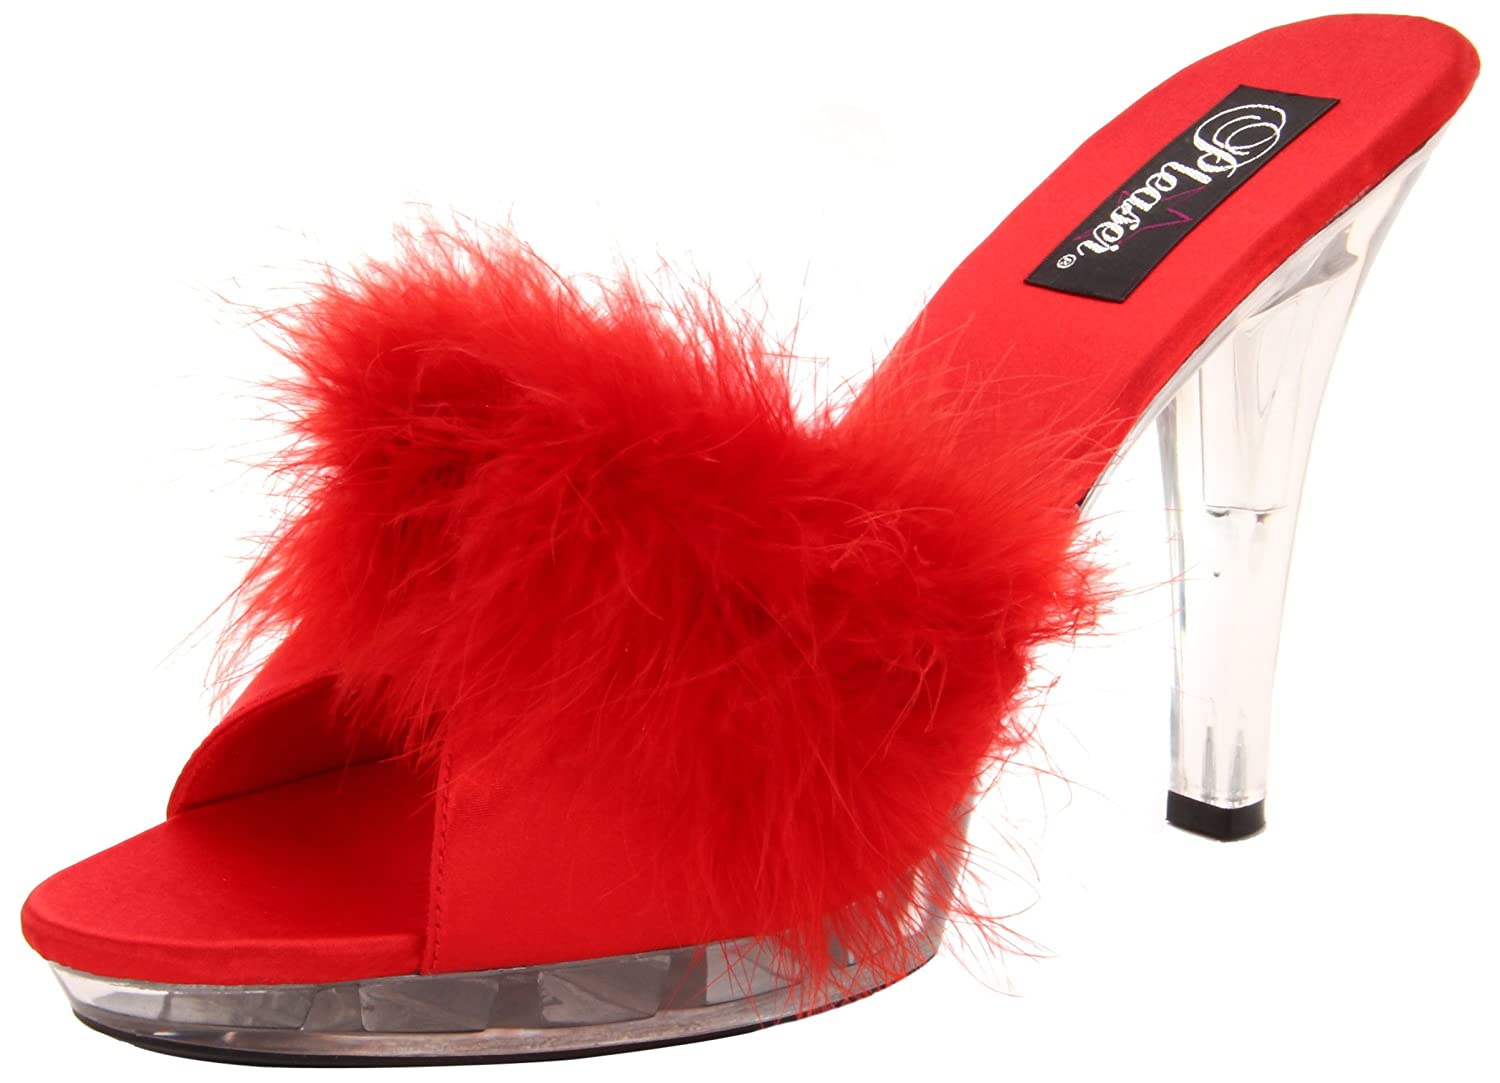 Pleaser LIP101-8/BP/C LIP101-8/BP/C (Red Mules Femmes Rouge (Red Satin-fur Femmes/Clr) c716543 - reprogrammed.space